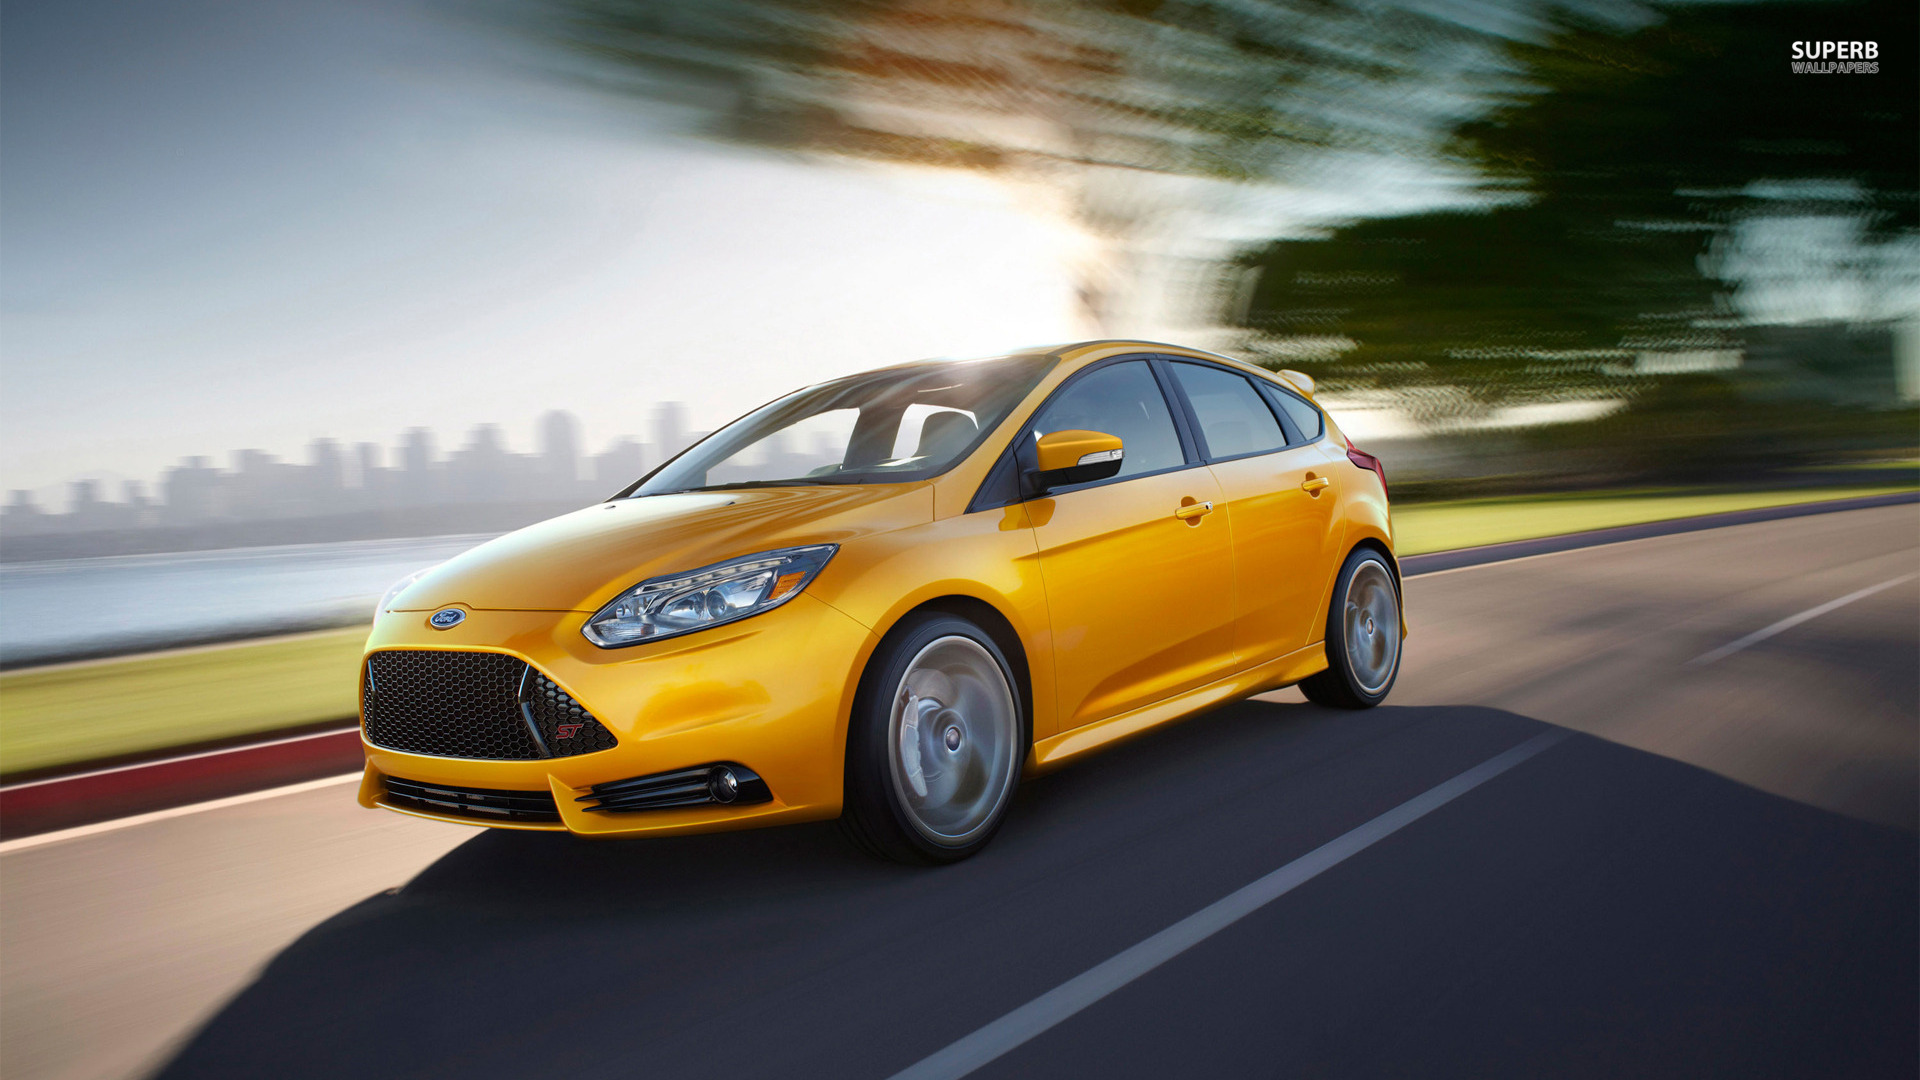 2013 Ford Focus ST wallpaper 1920x1080 1920x1080